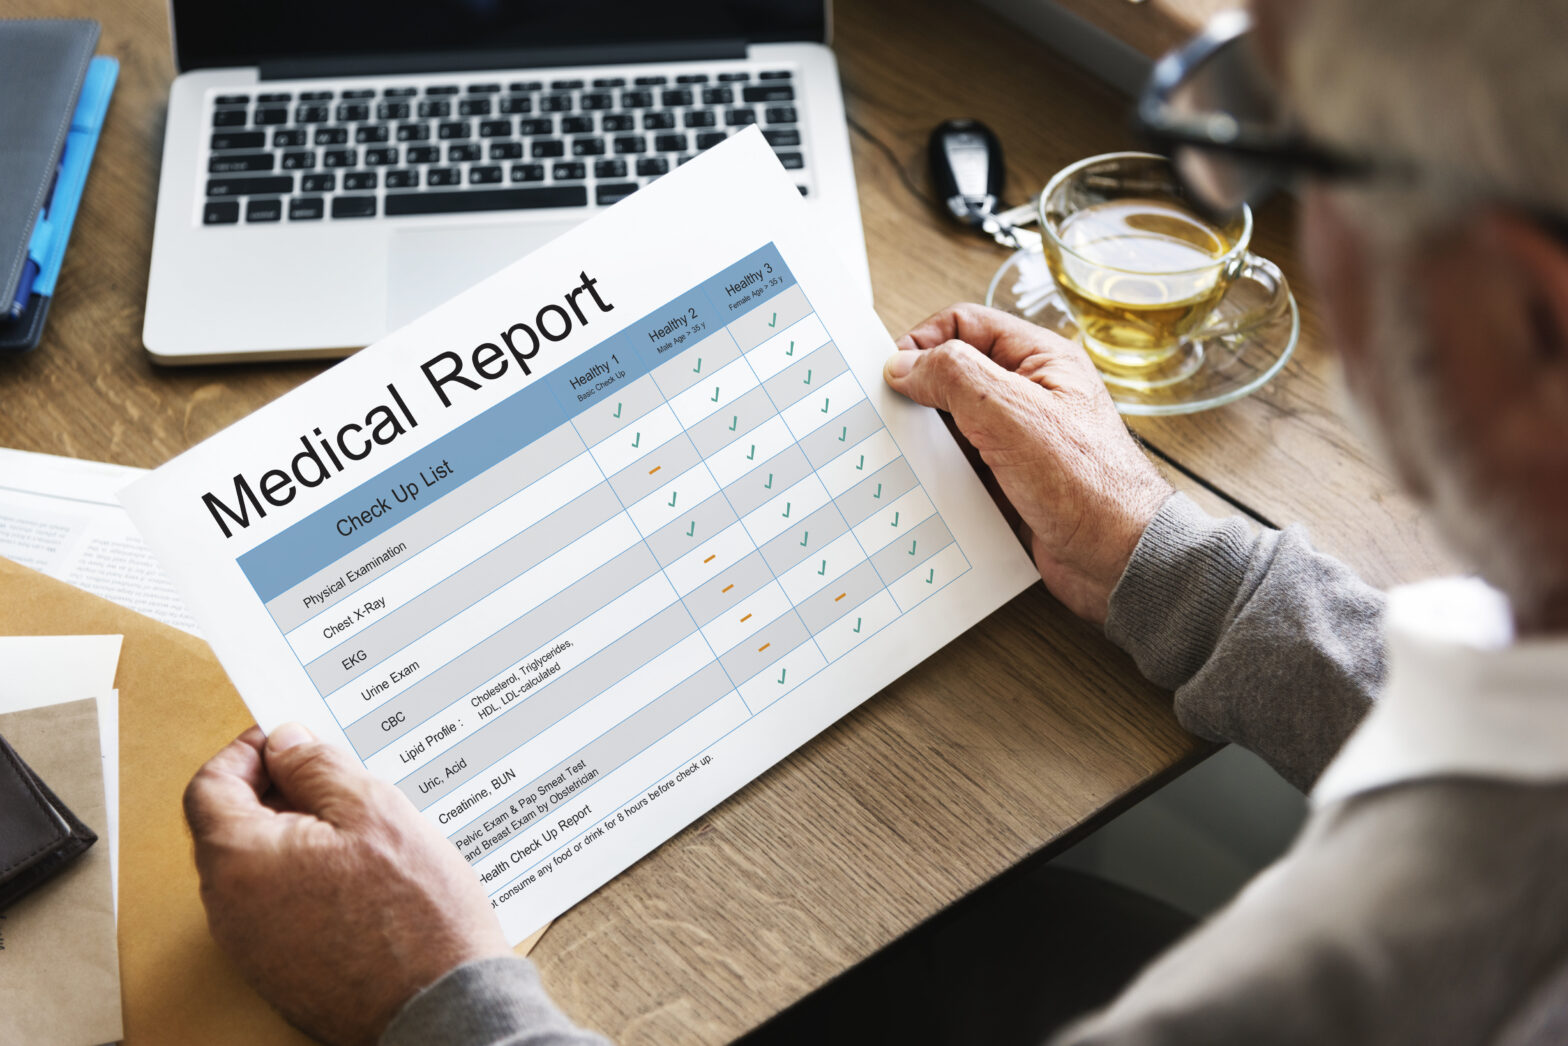 As a result of health screening, the patient is reading the medical report.